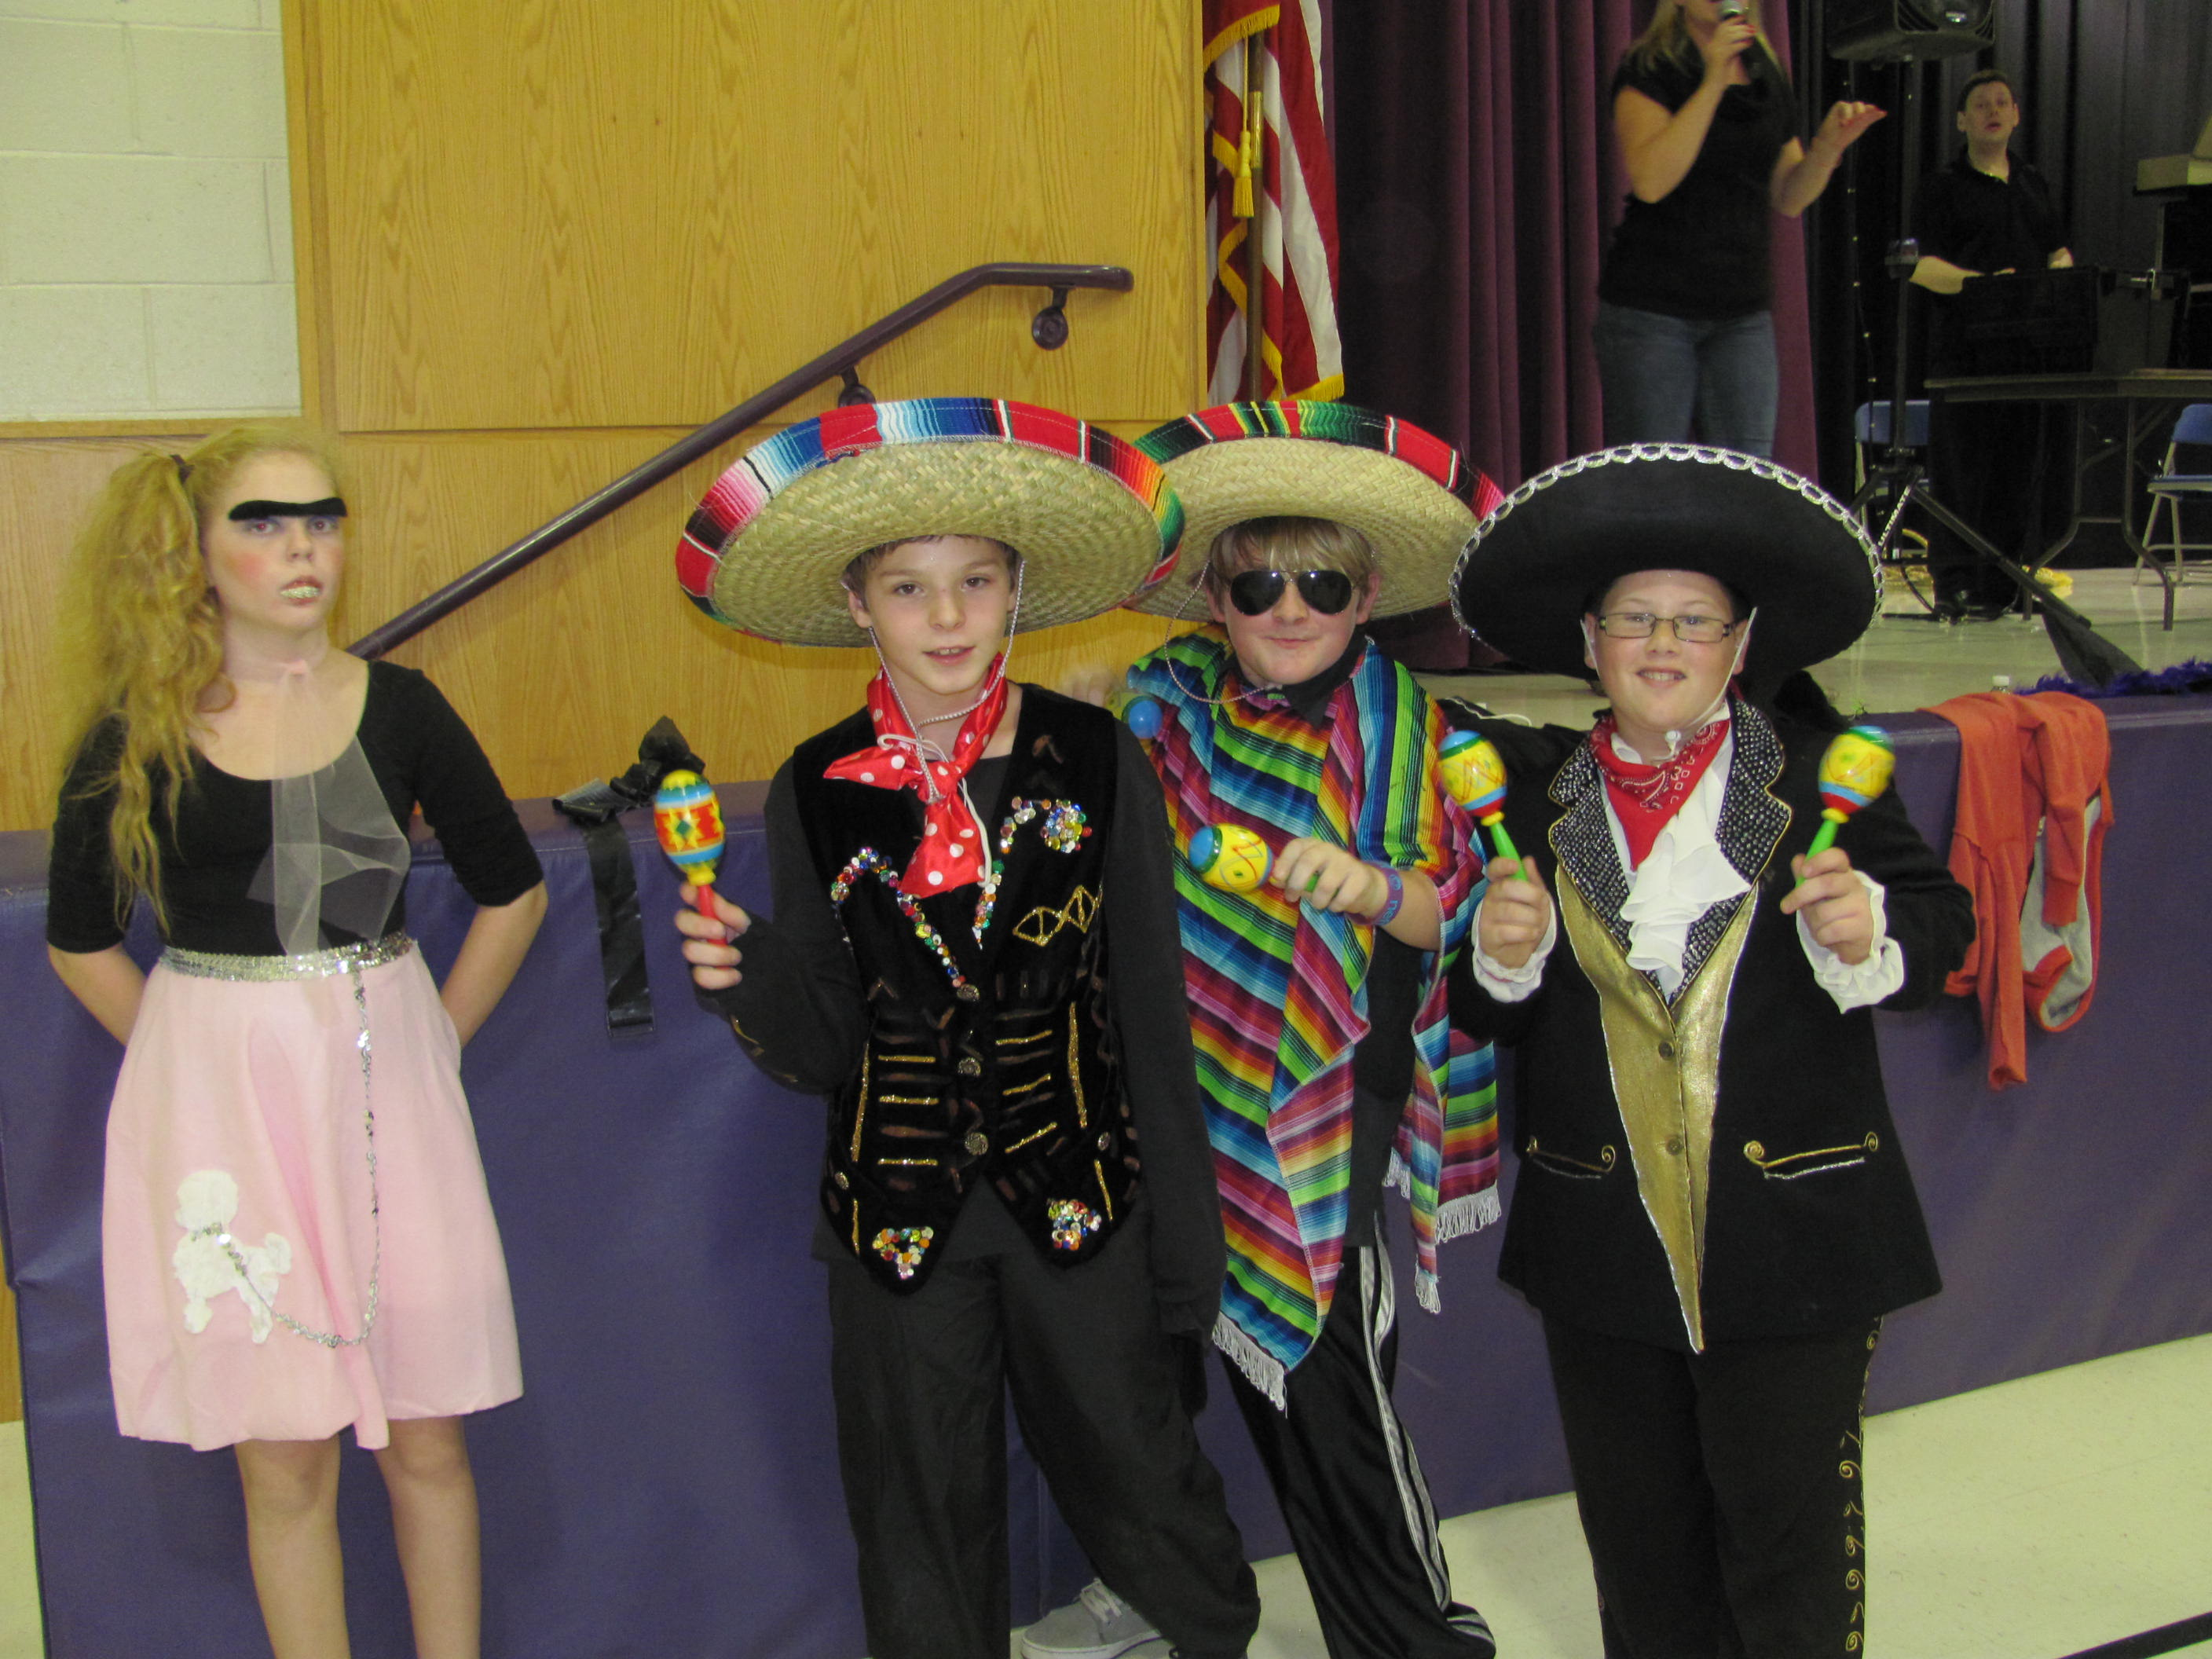 Steinhauer Students Dress Up For Halloween Dance